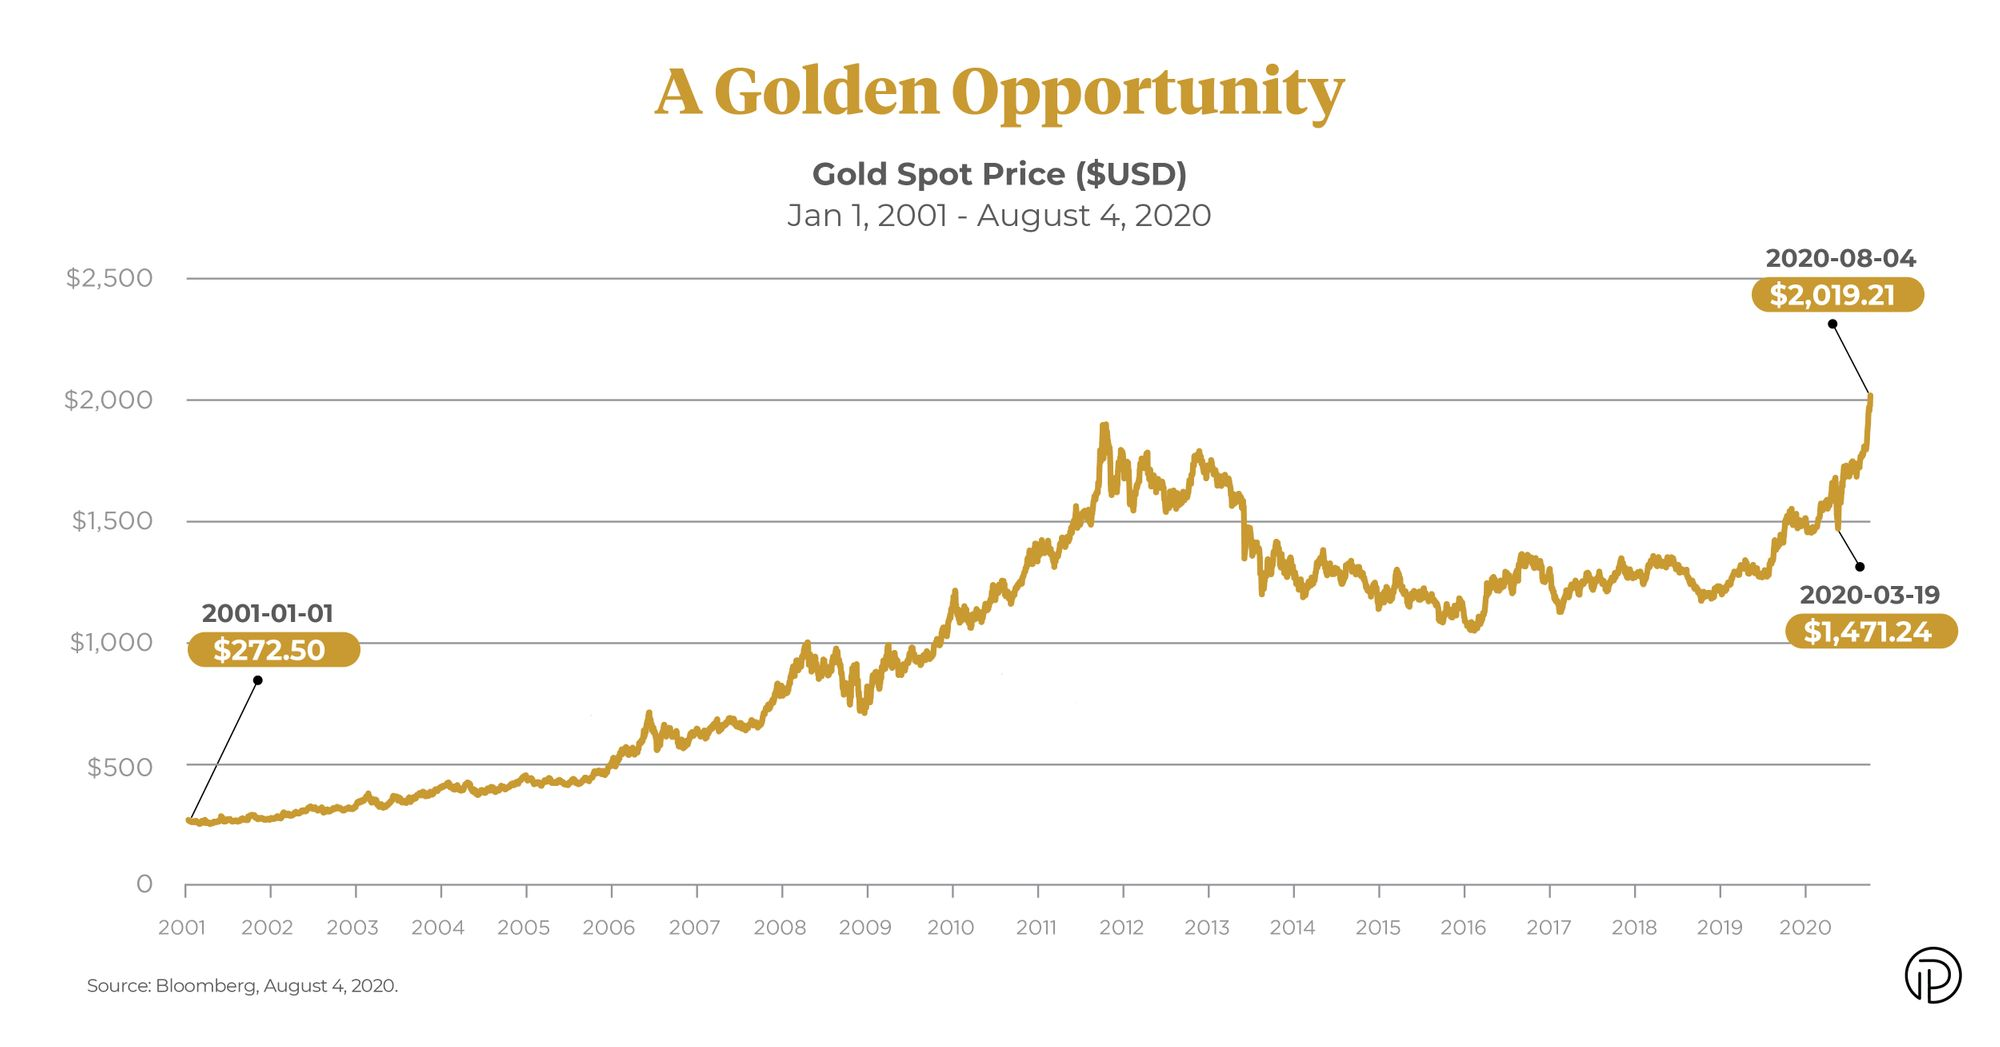 Gold price GLD and Purpose Gold Bullion Fund ETF KILO returns